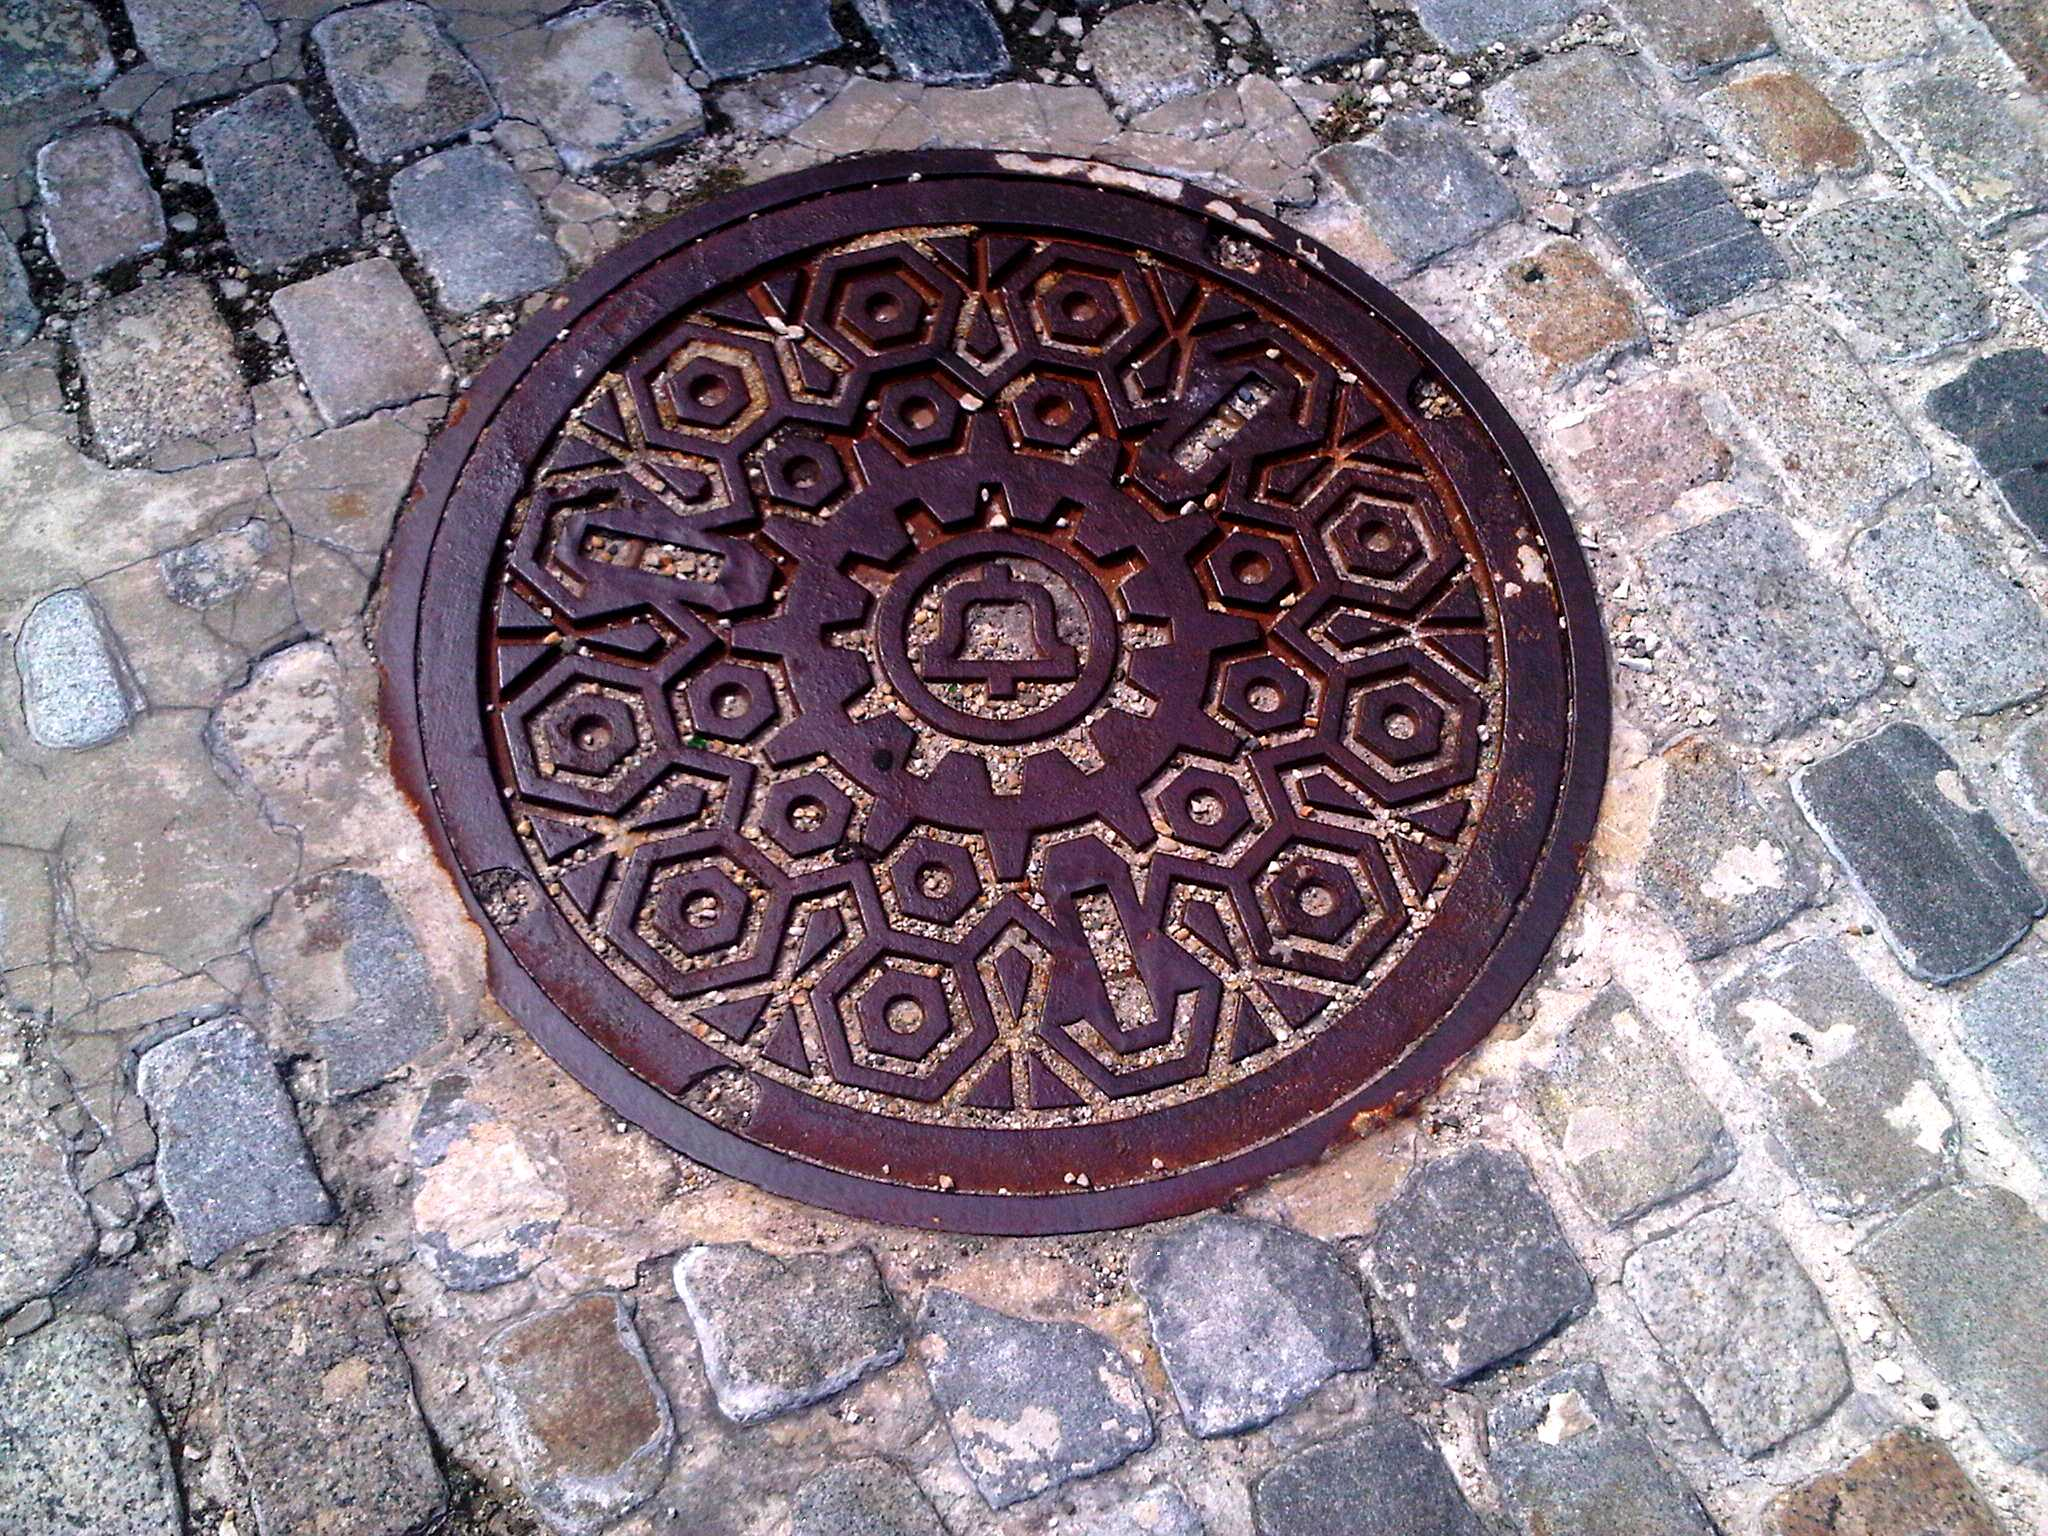 A Bell Telephone Company manhole cover along a street in Old City Philadelphia.